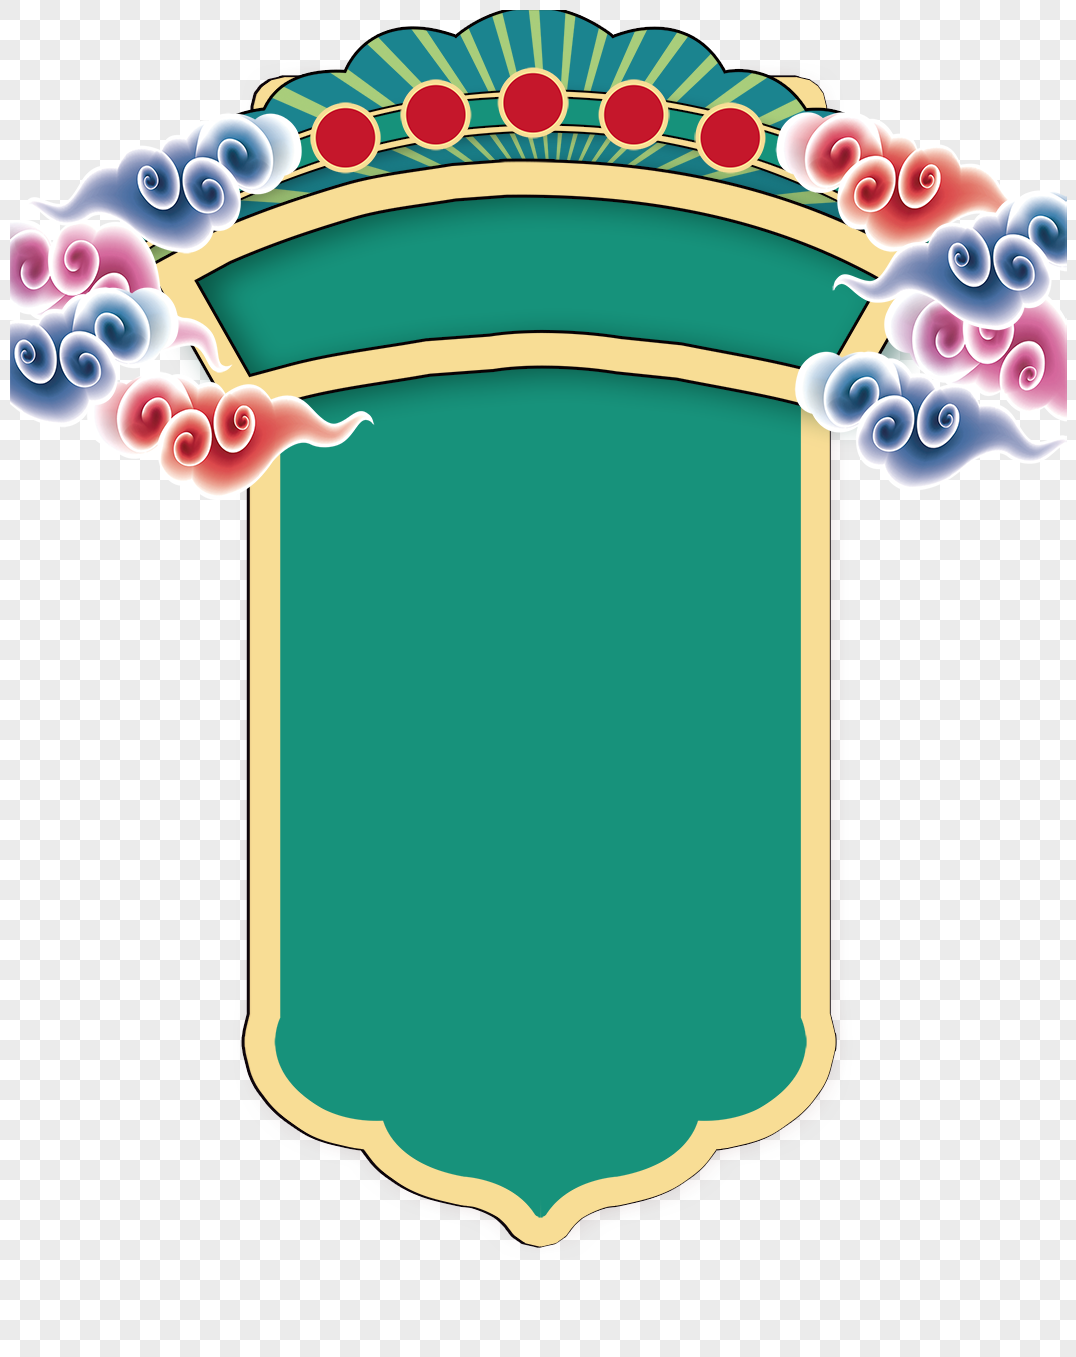 New Years Auspicious Cloud And Banner Border Background Png